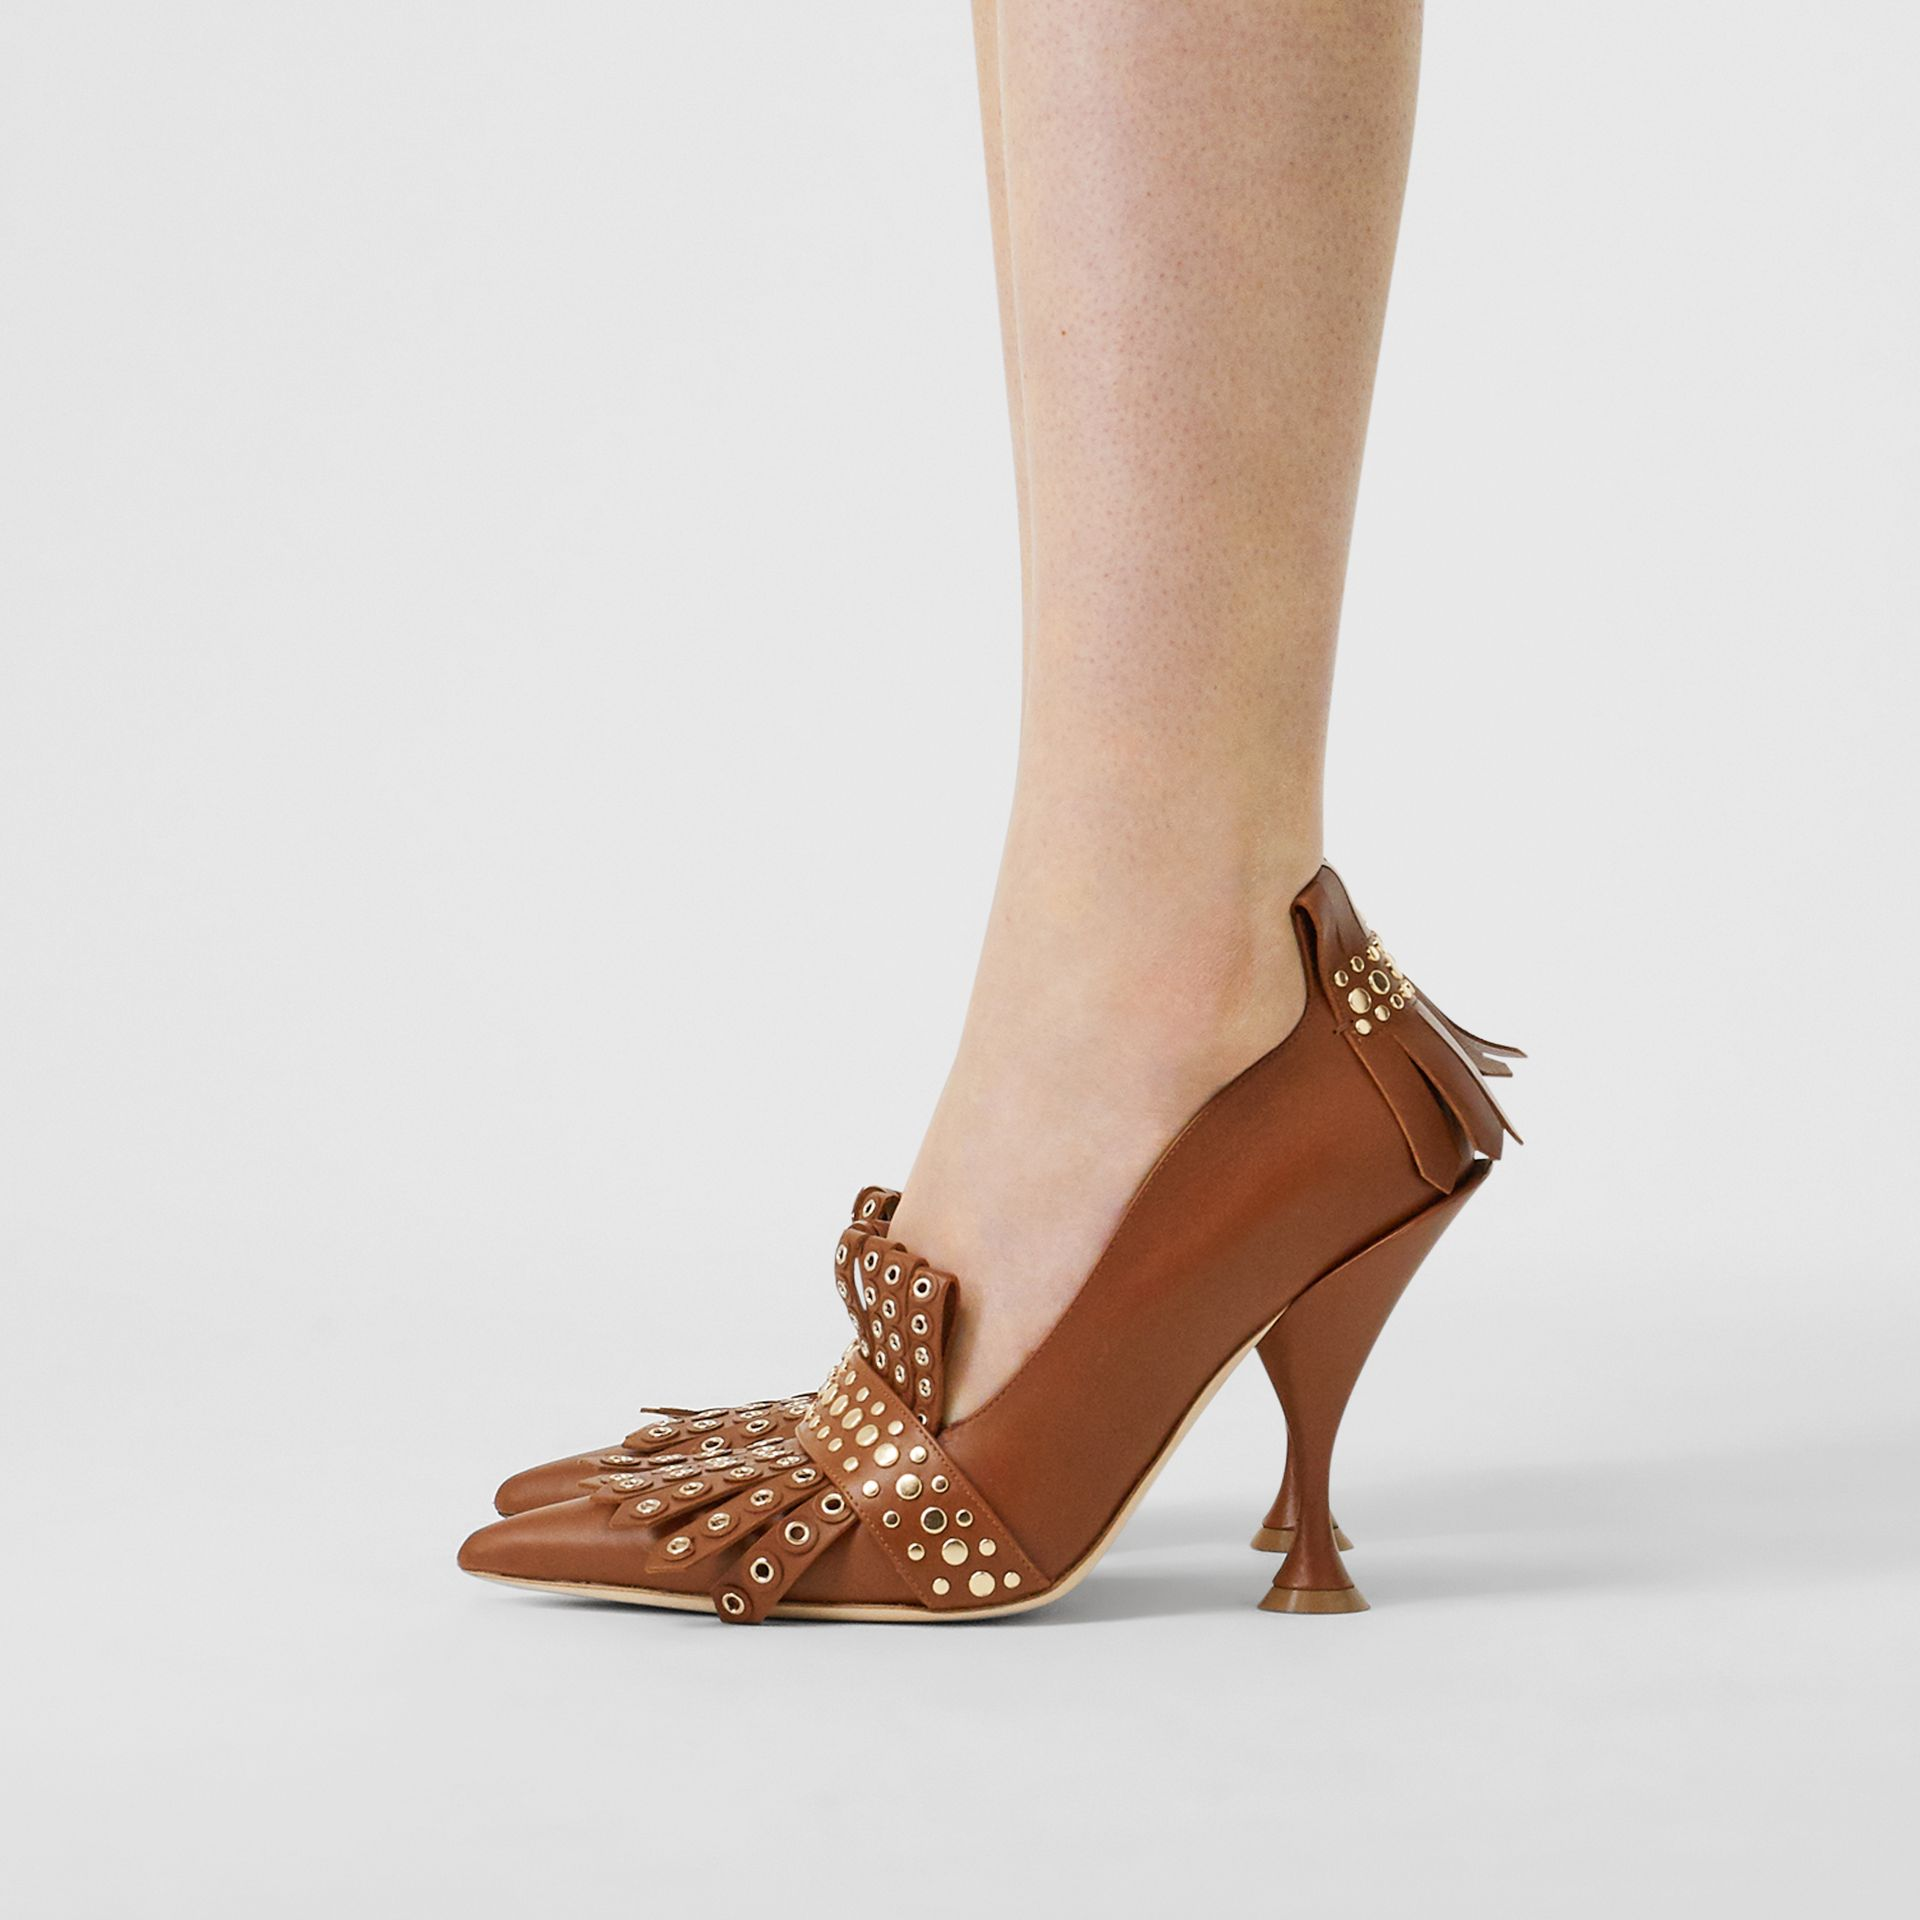 Studded Kiltie Fringe Leather Point-toe Pumps in Tan - Women | Burberry - gallery image 2